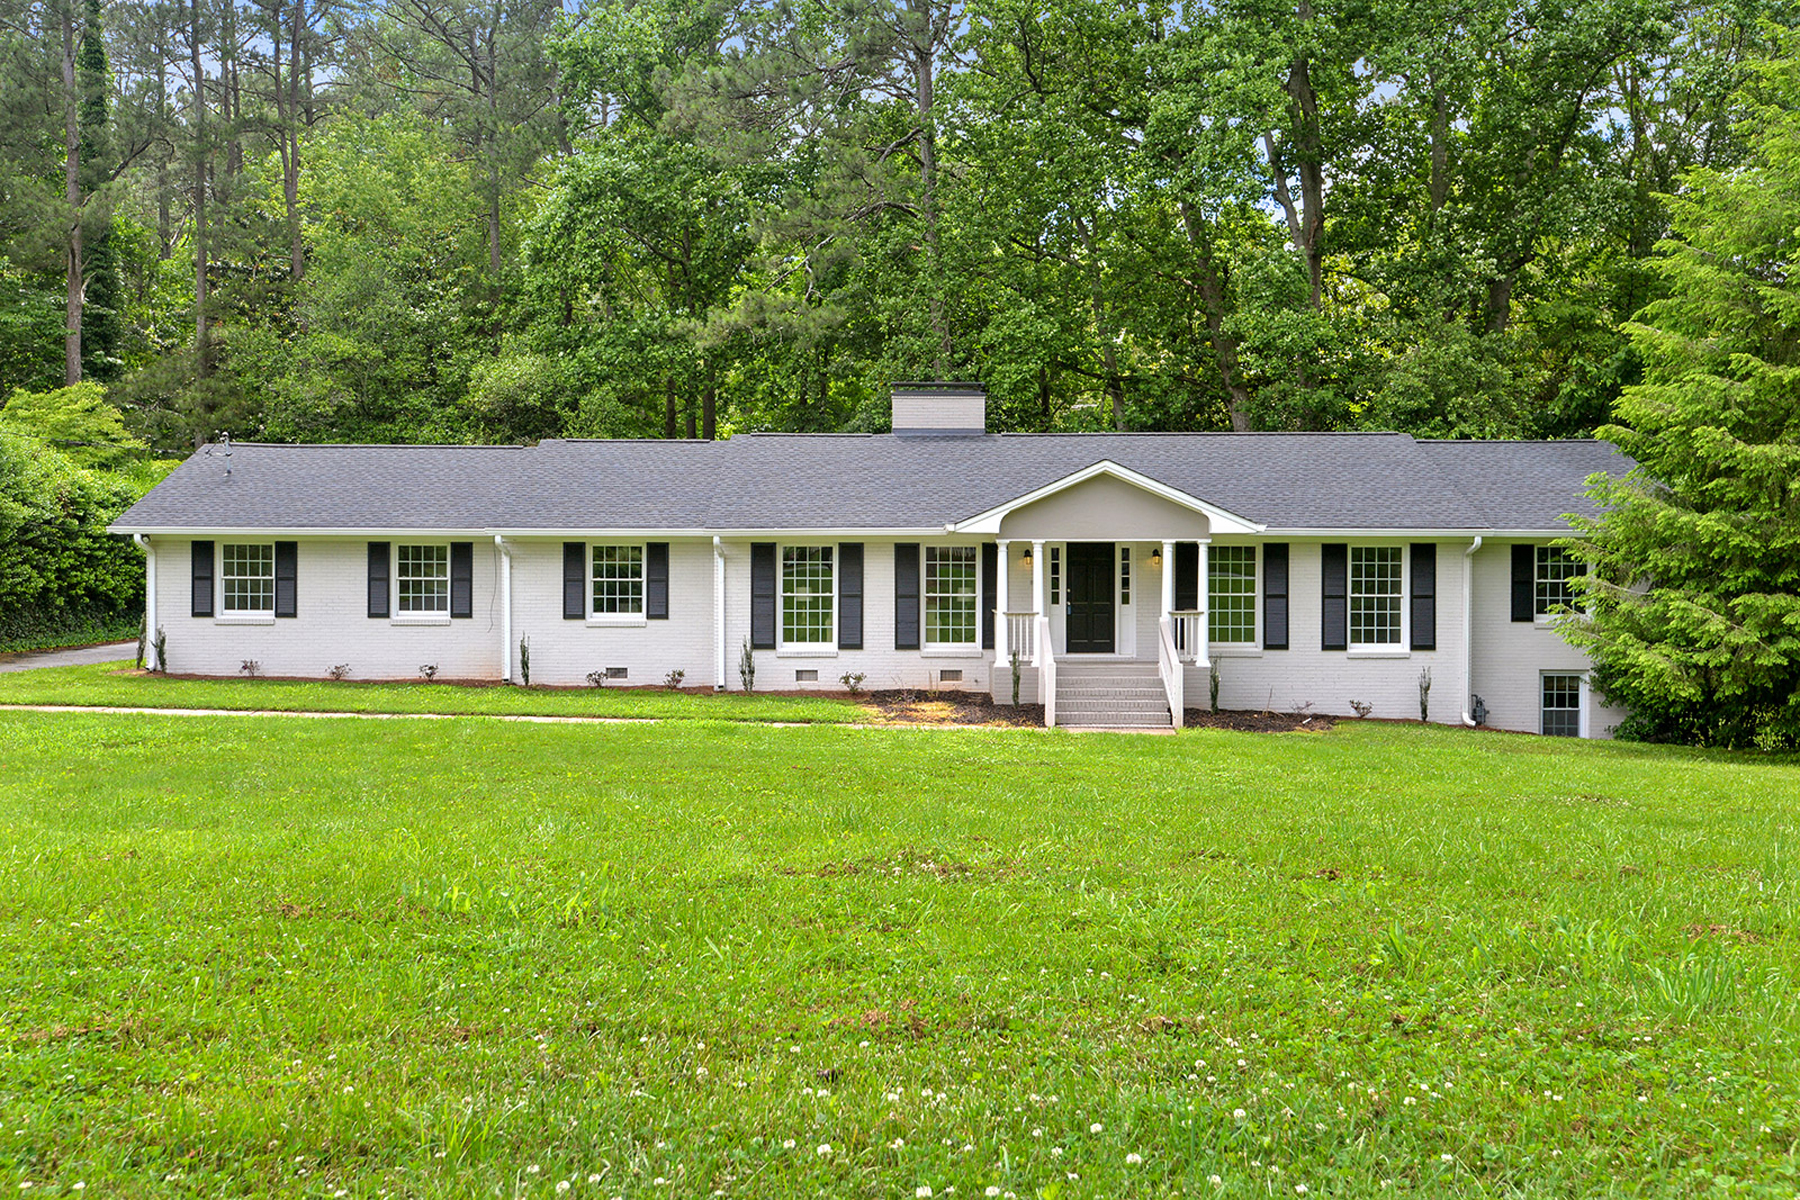 Single Family Home for Sale at Beautiful Completely Renovated Ranch With All The Touches 636 Bouldercrest Drive SW Marietta, Georgia 30064 United States